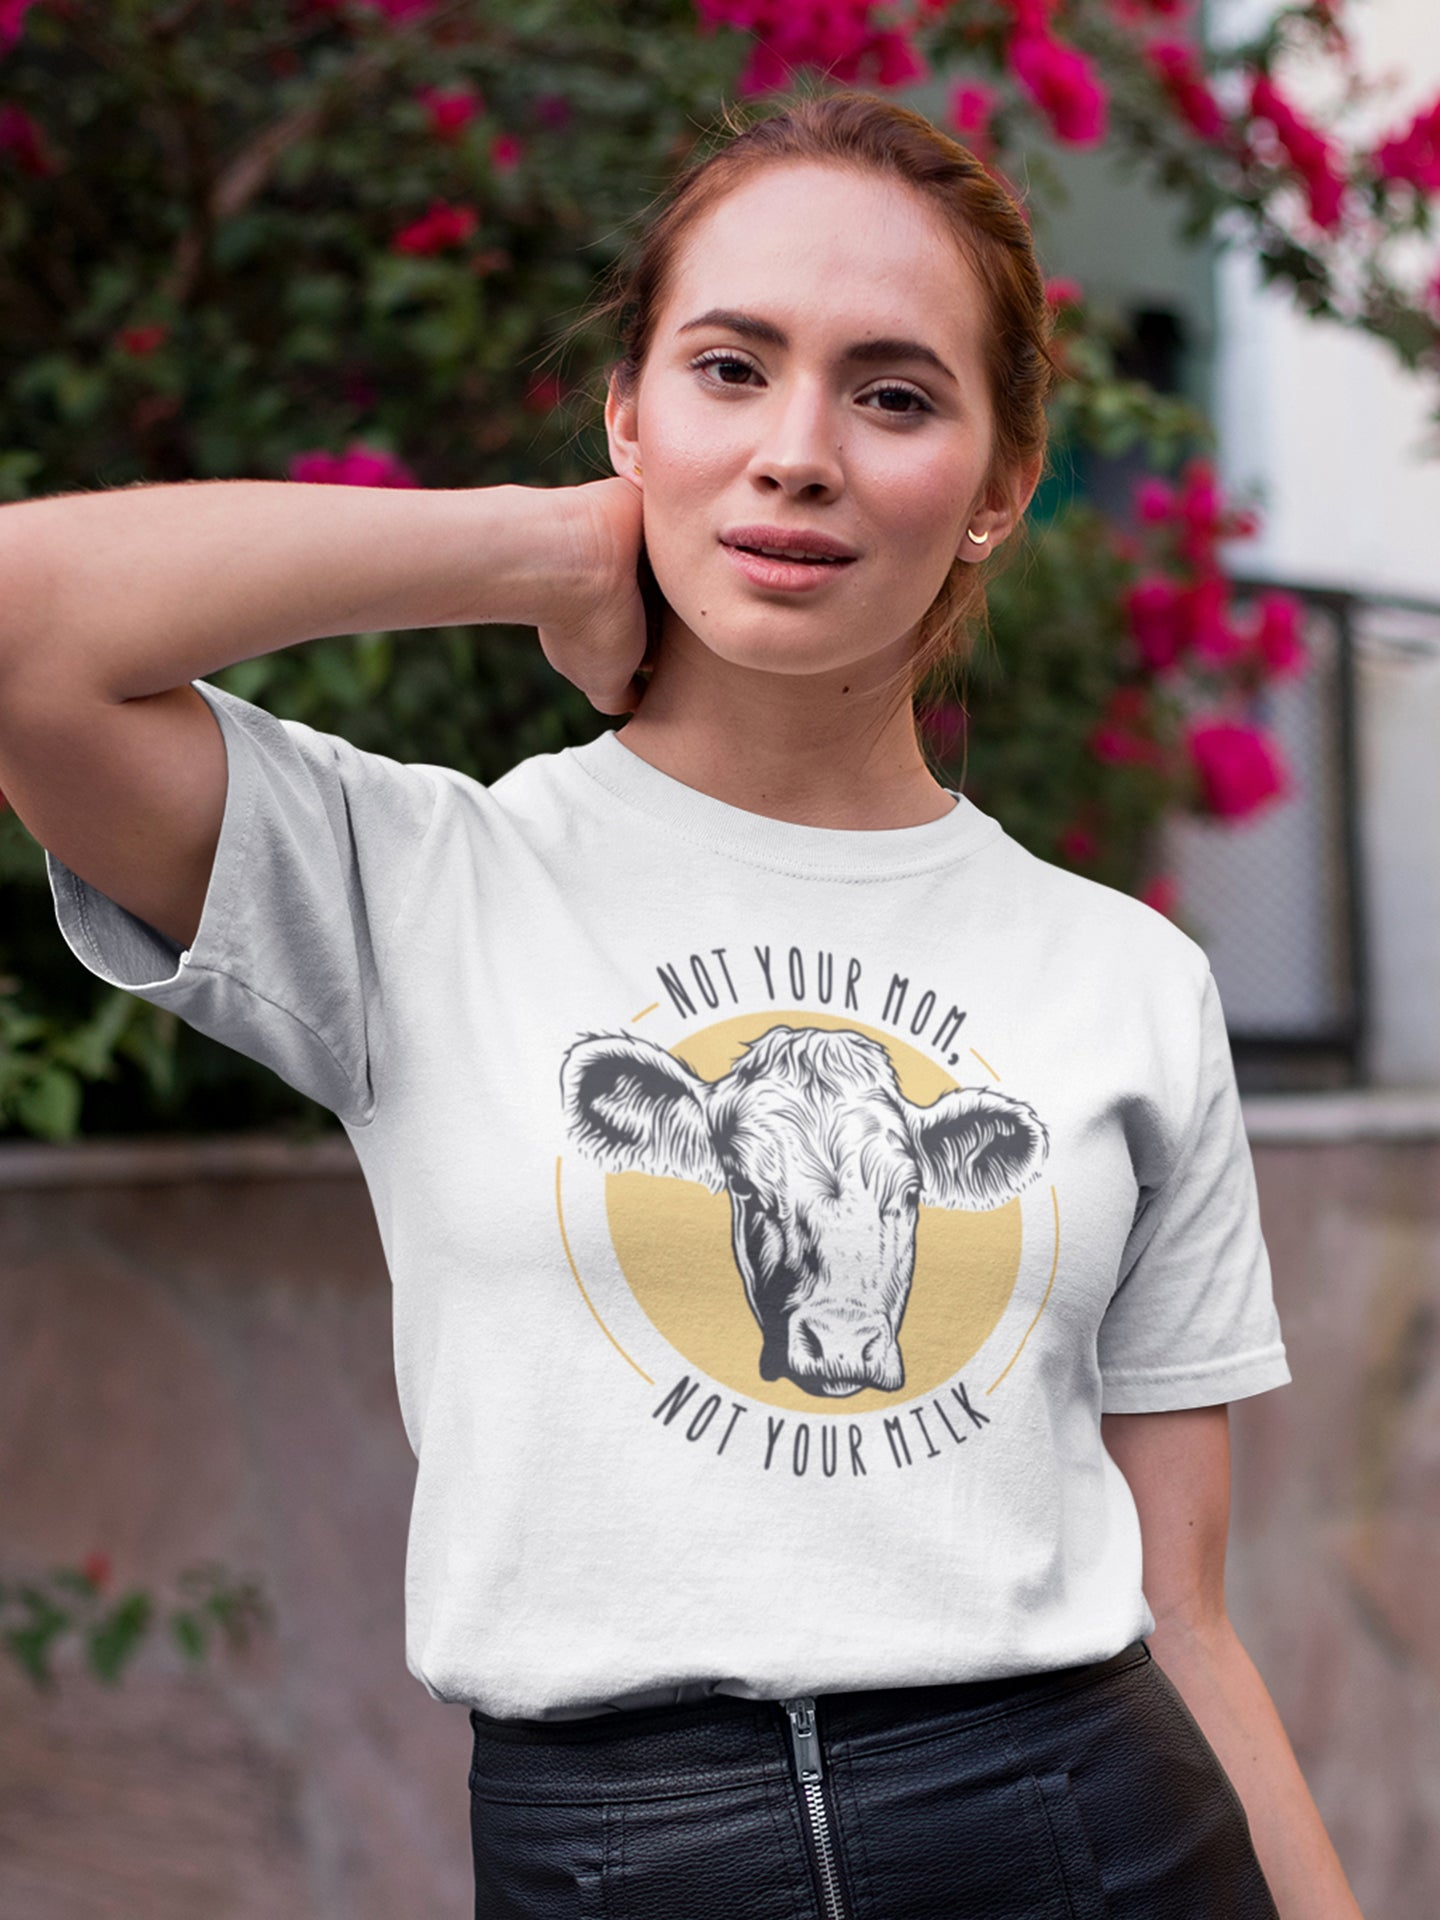 Not your mom, not your milk - Vegan t-shirt